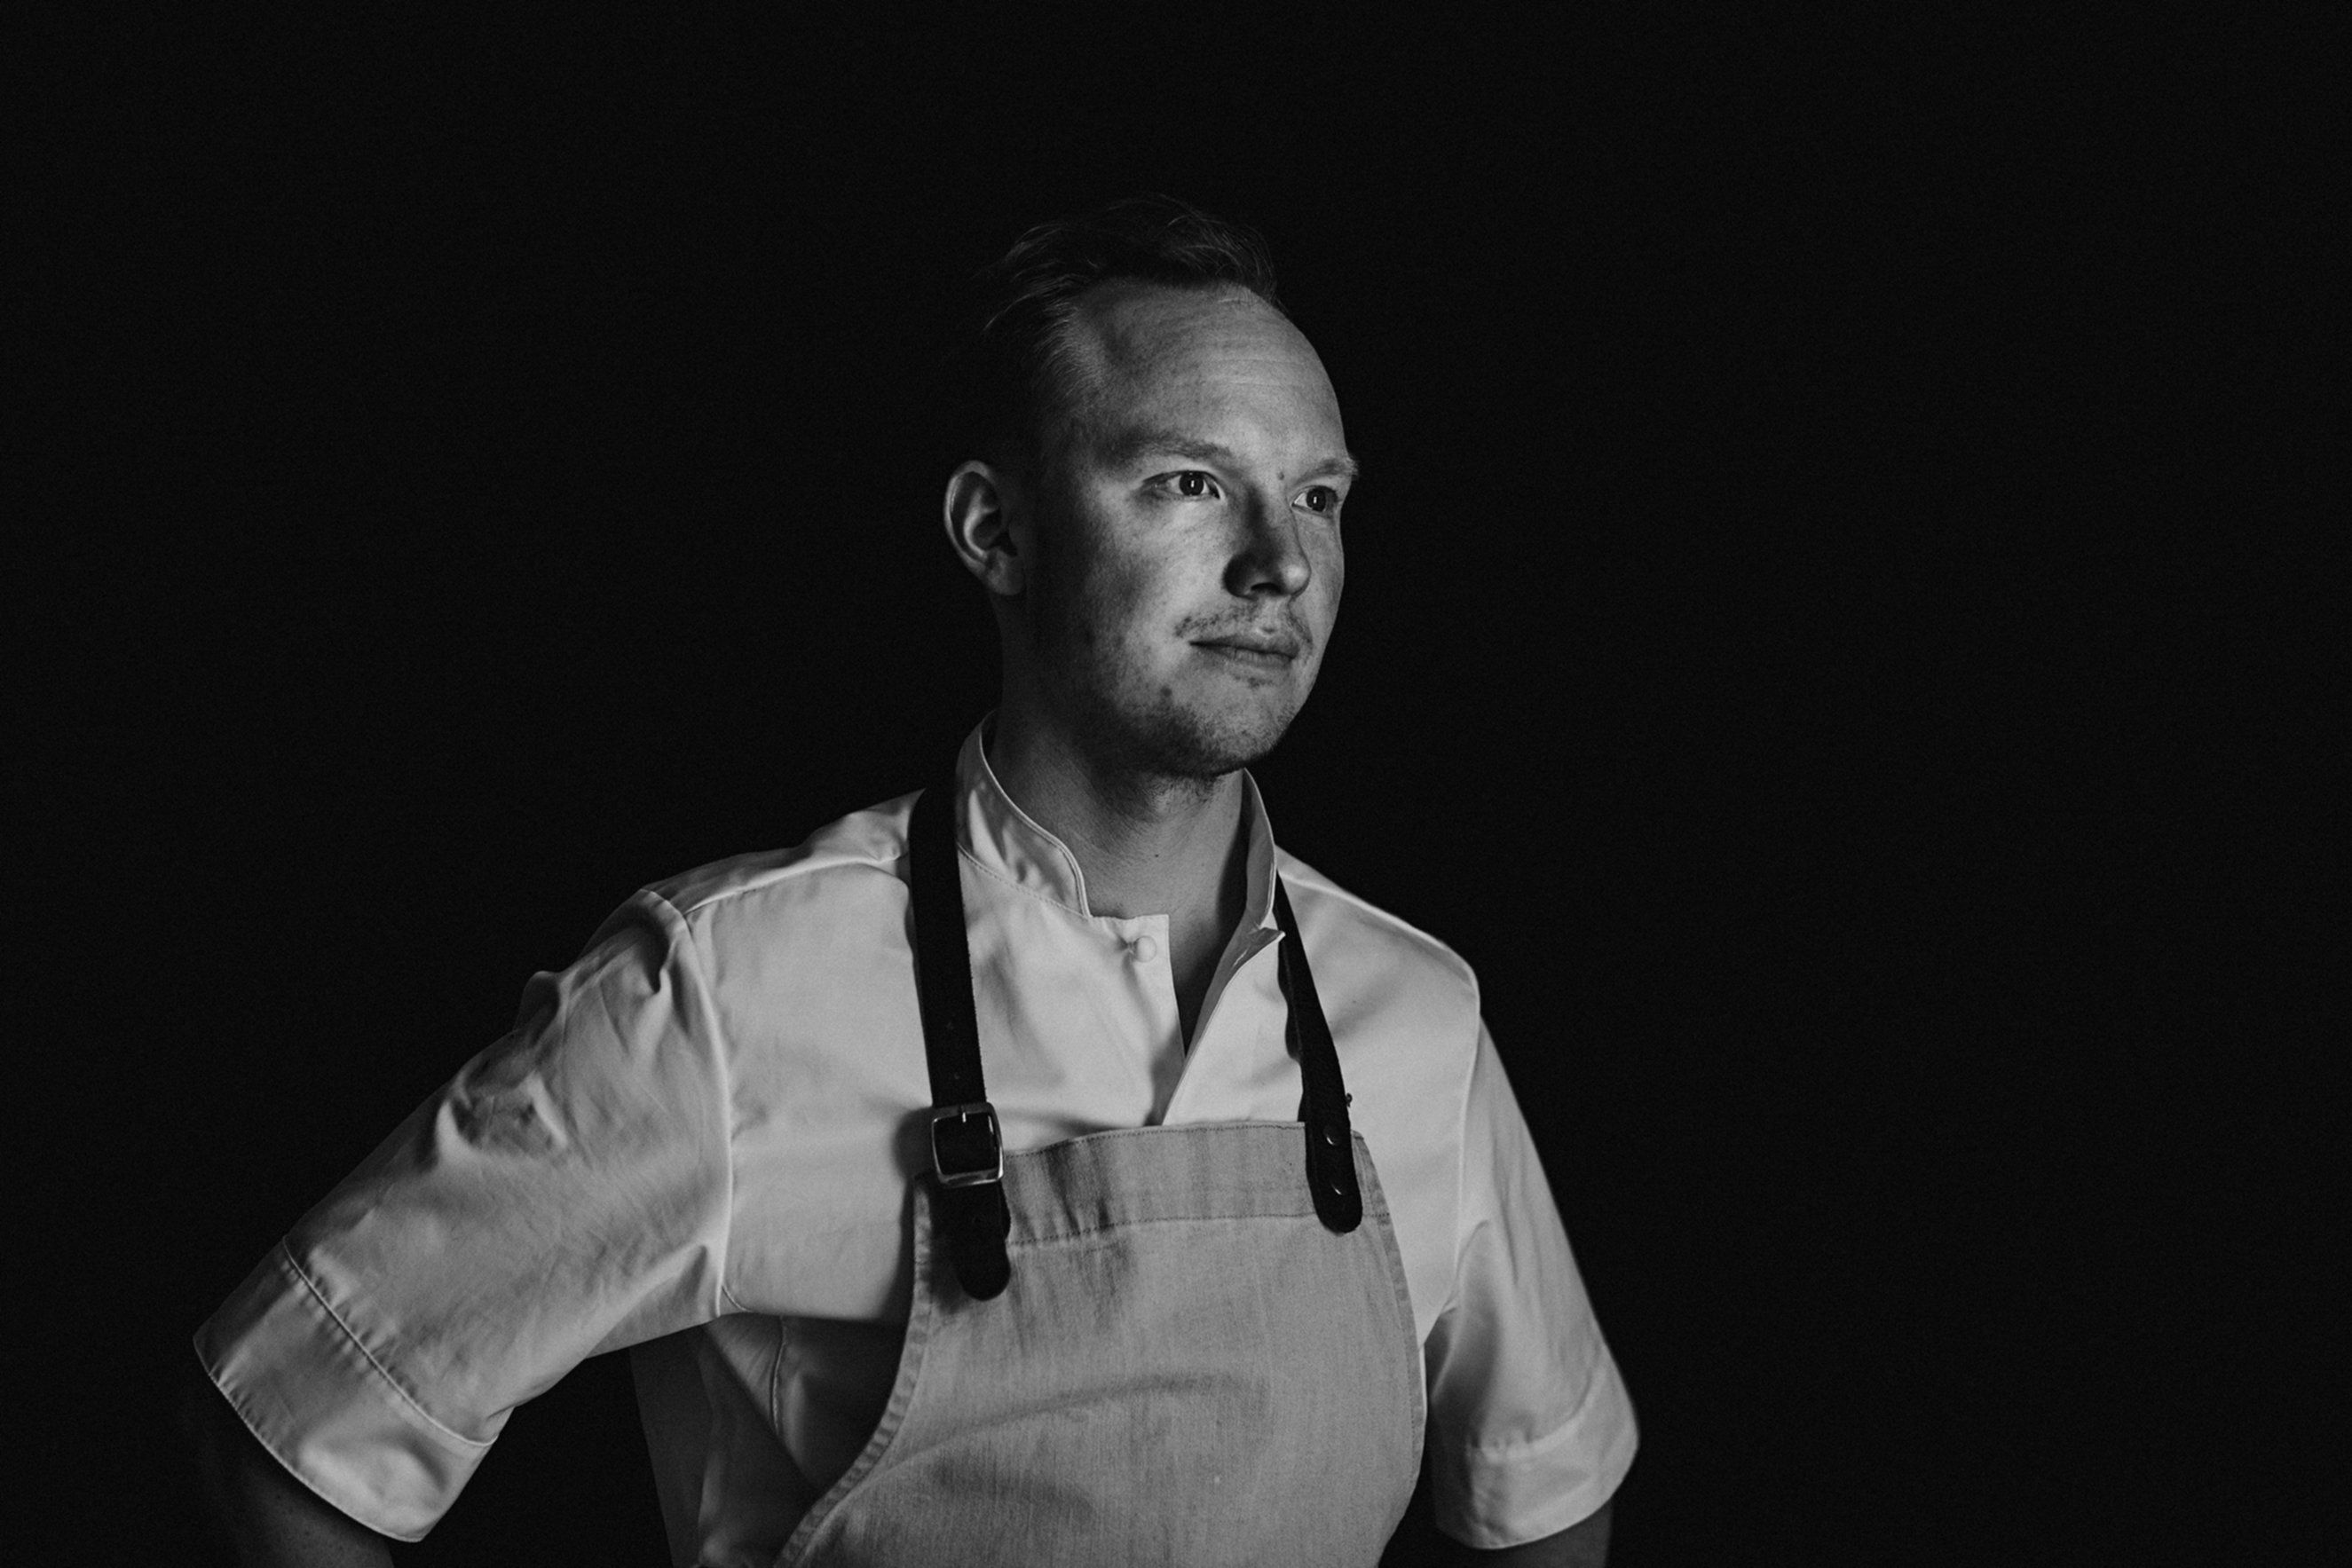 Långötorp Garden and Heikki Liekola: Farm to table dinner 23-25.5.